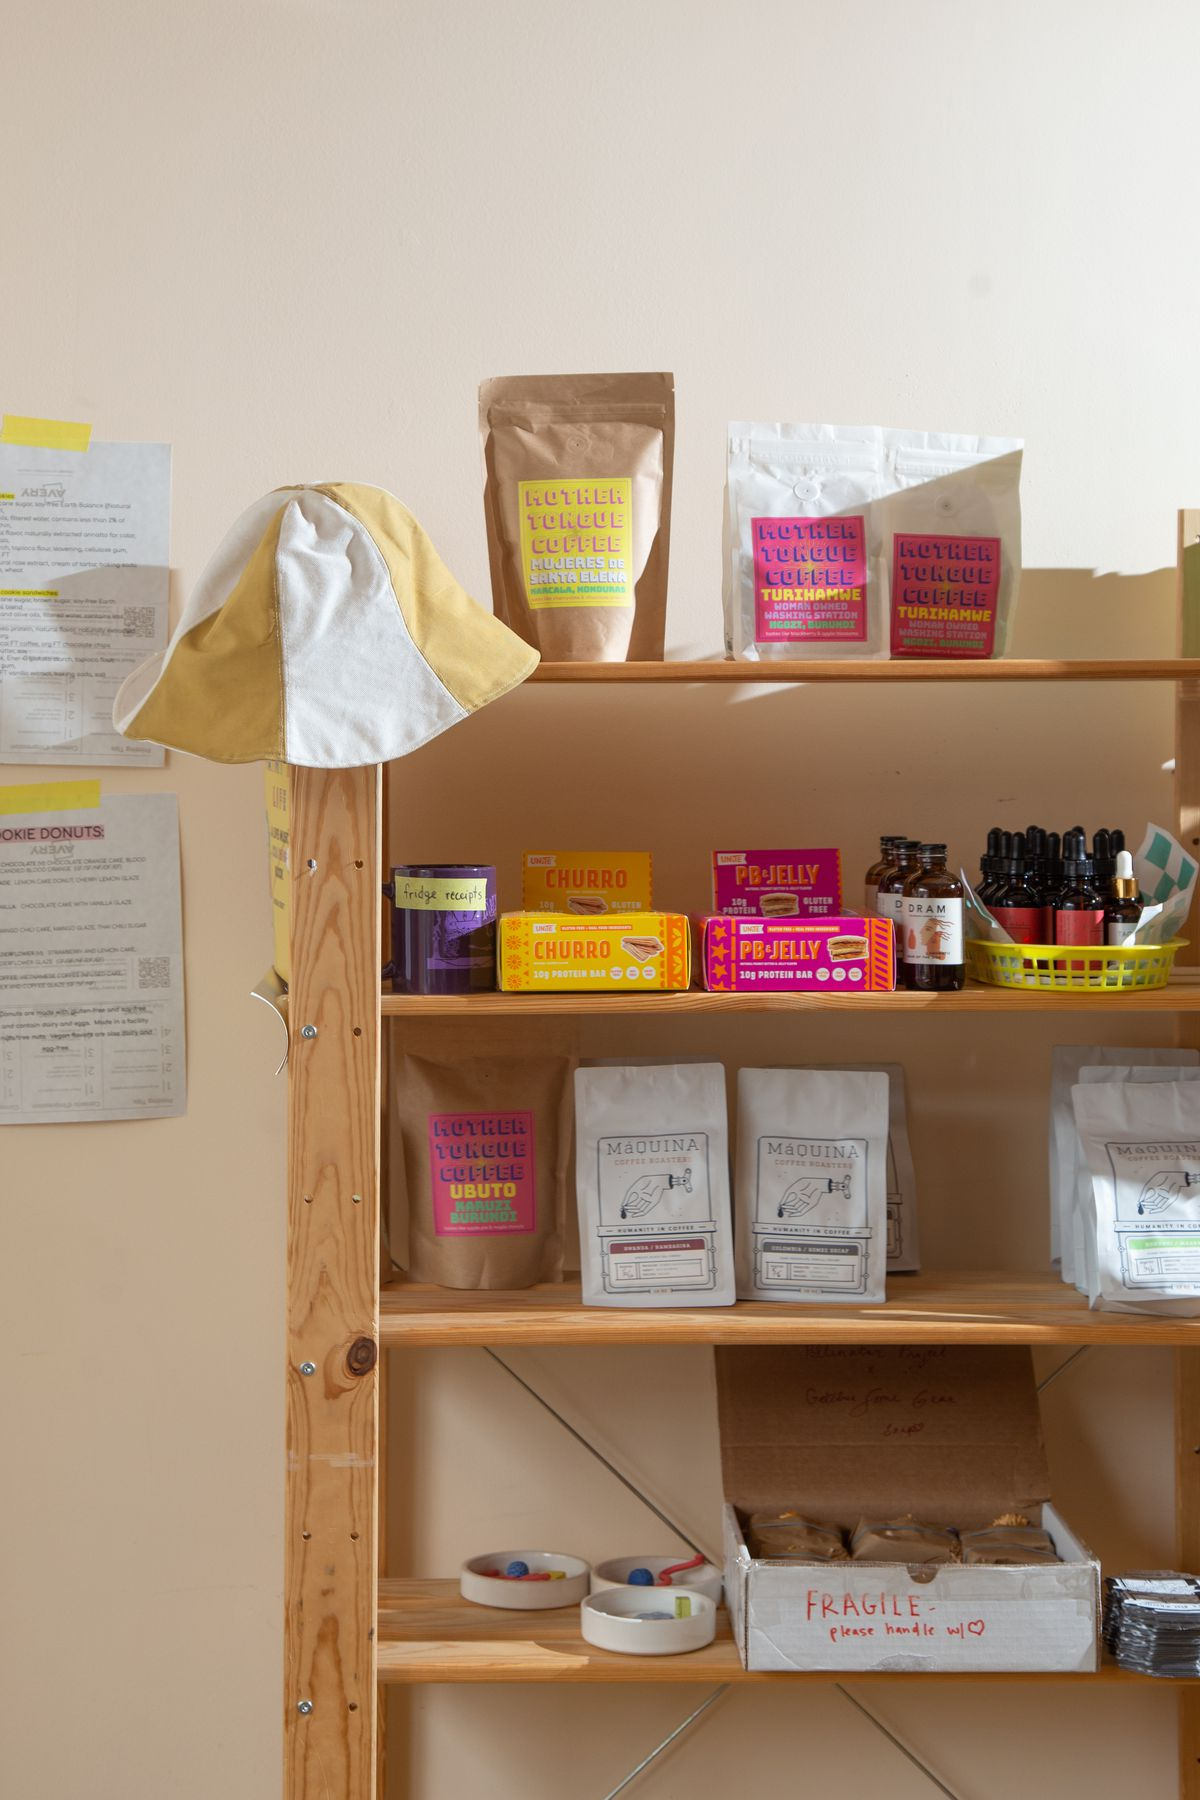 Some of the offerings Mina's World sells in its online store, from bags of coffee beans to tinctures and face oils